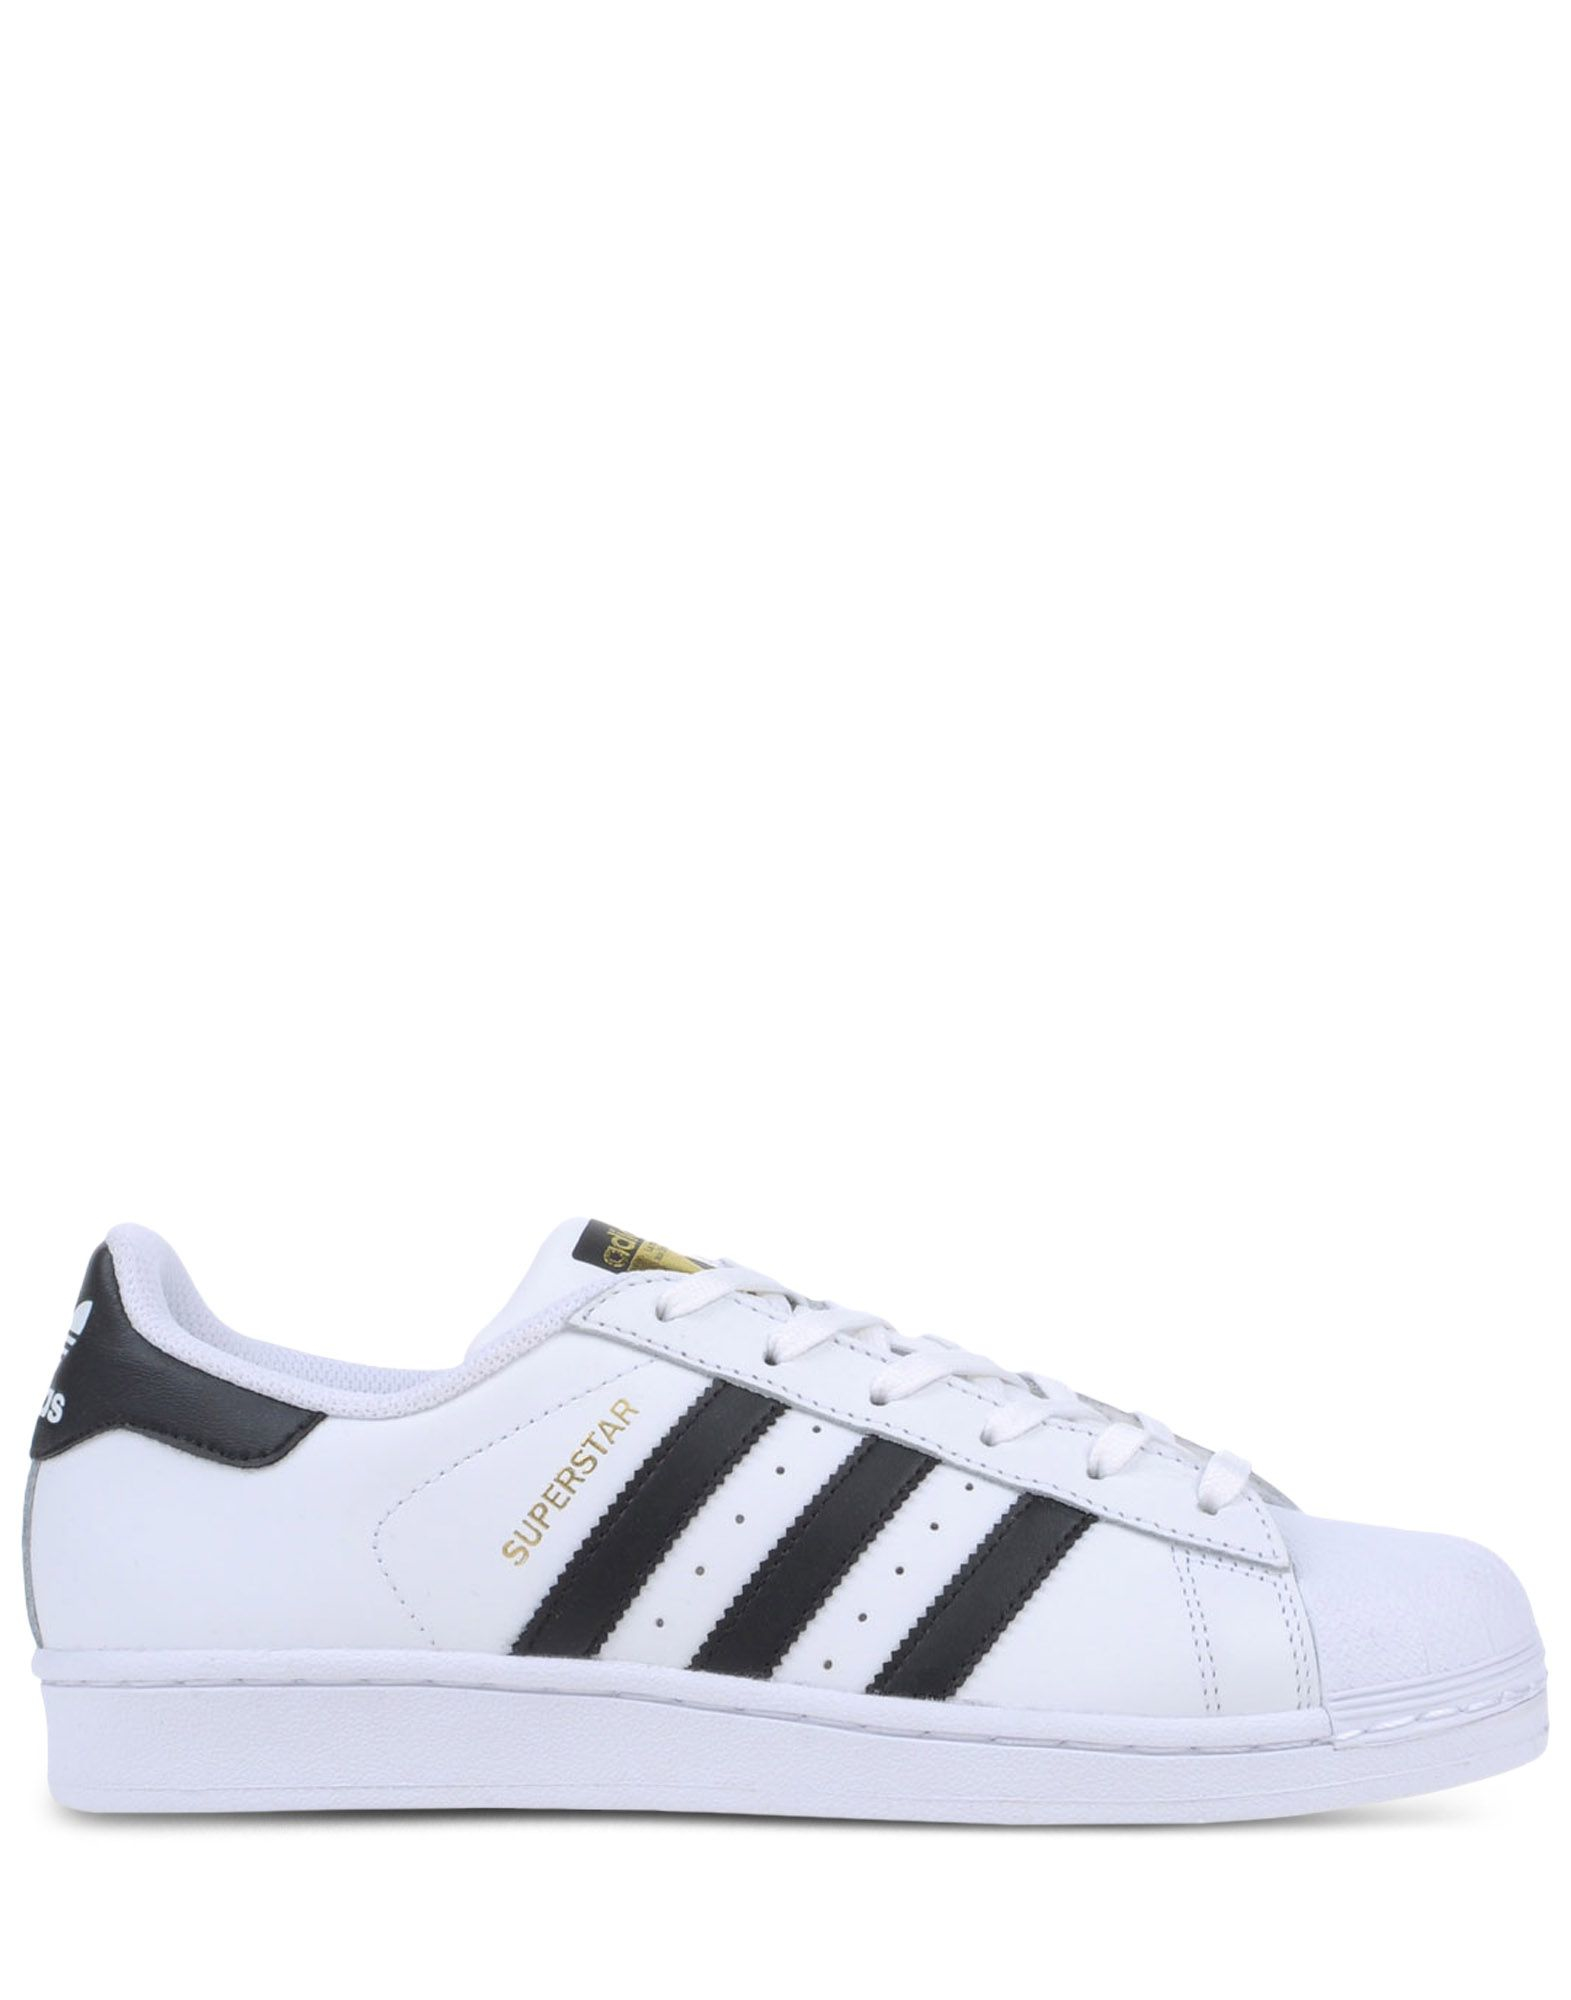 Adidas originals Low-tops in White | Lyst